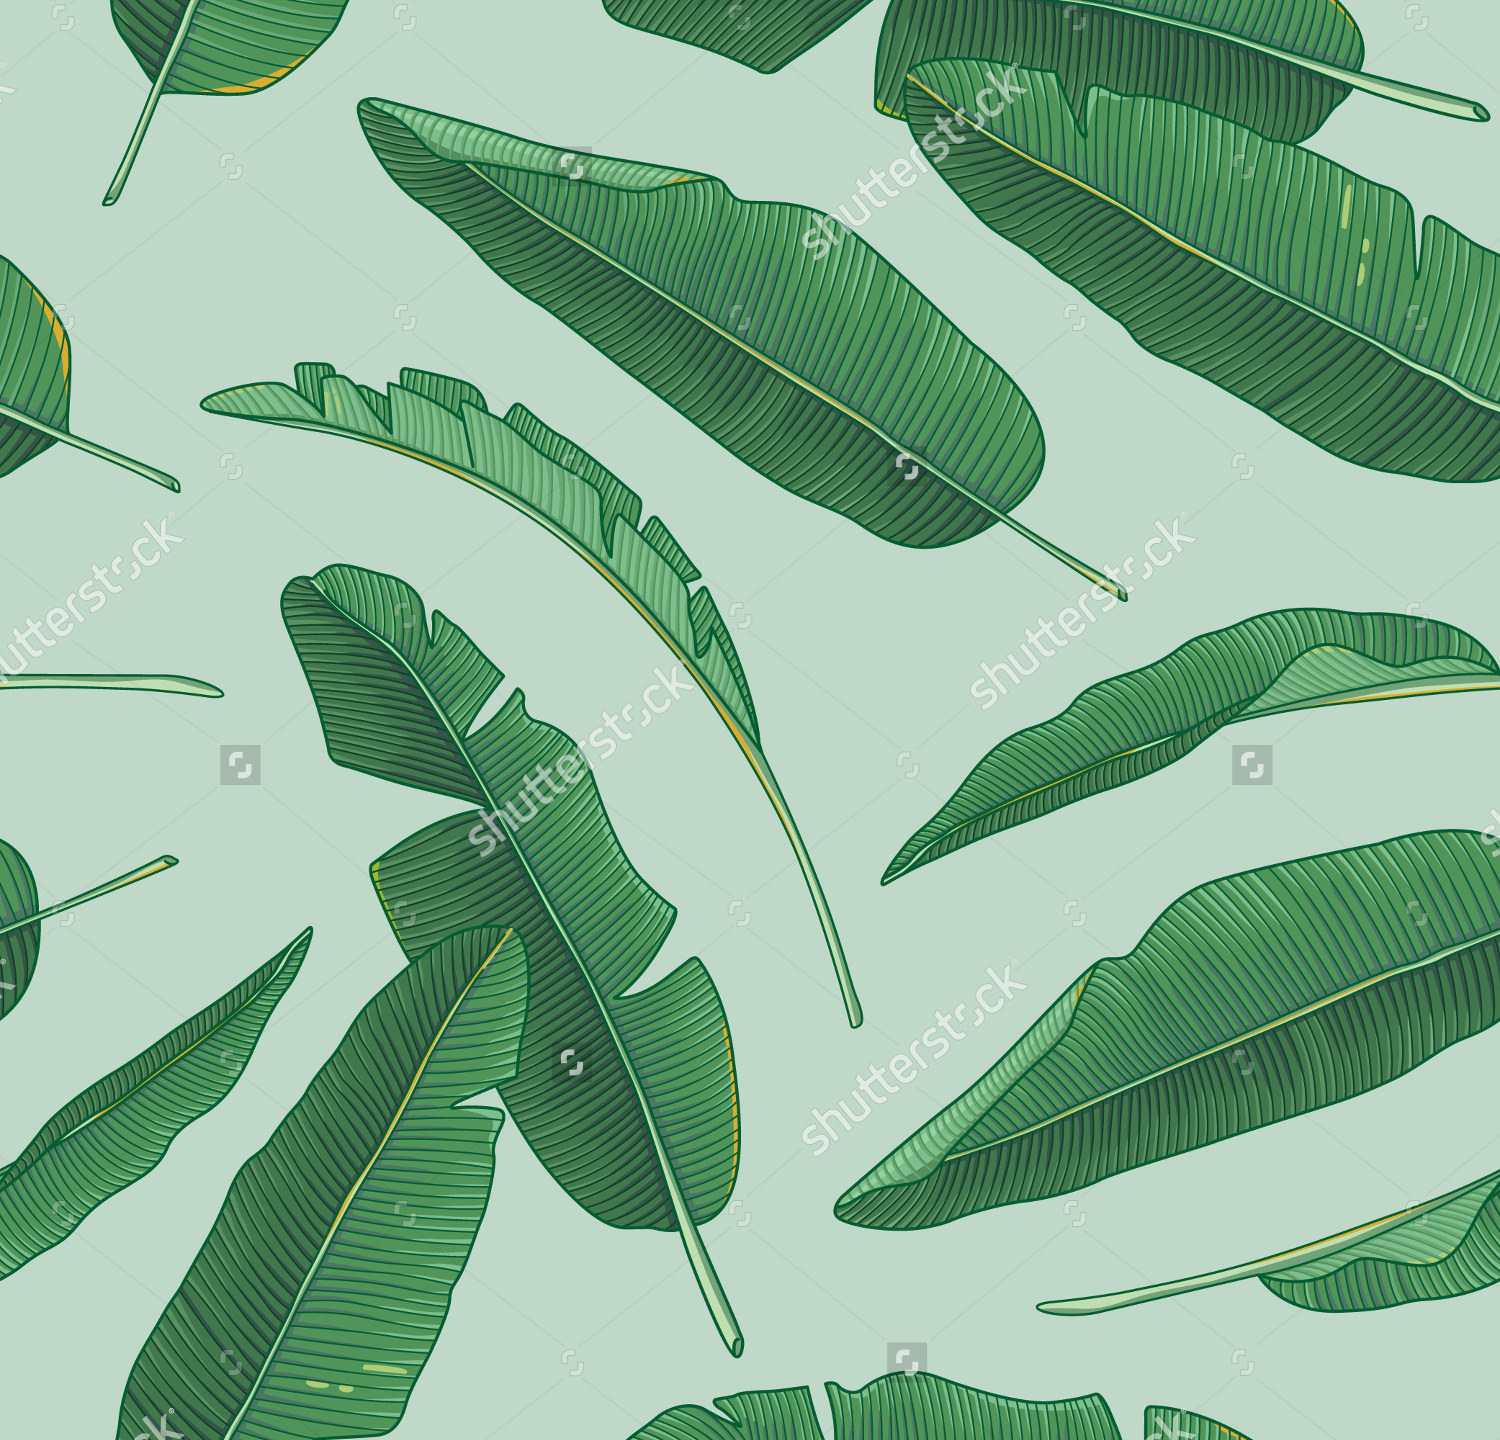 banana leaves pattern1